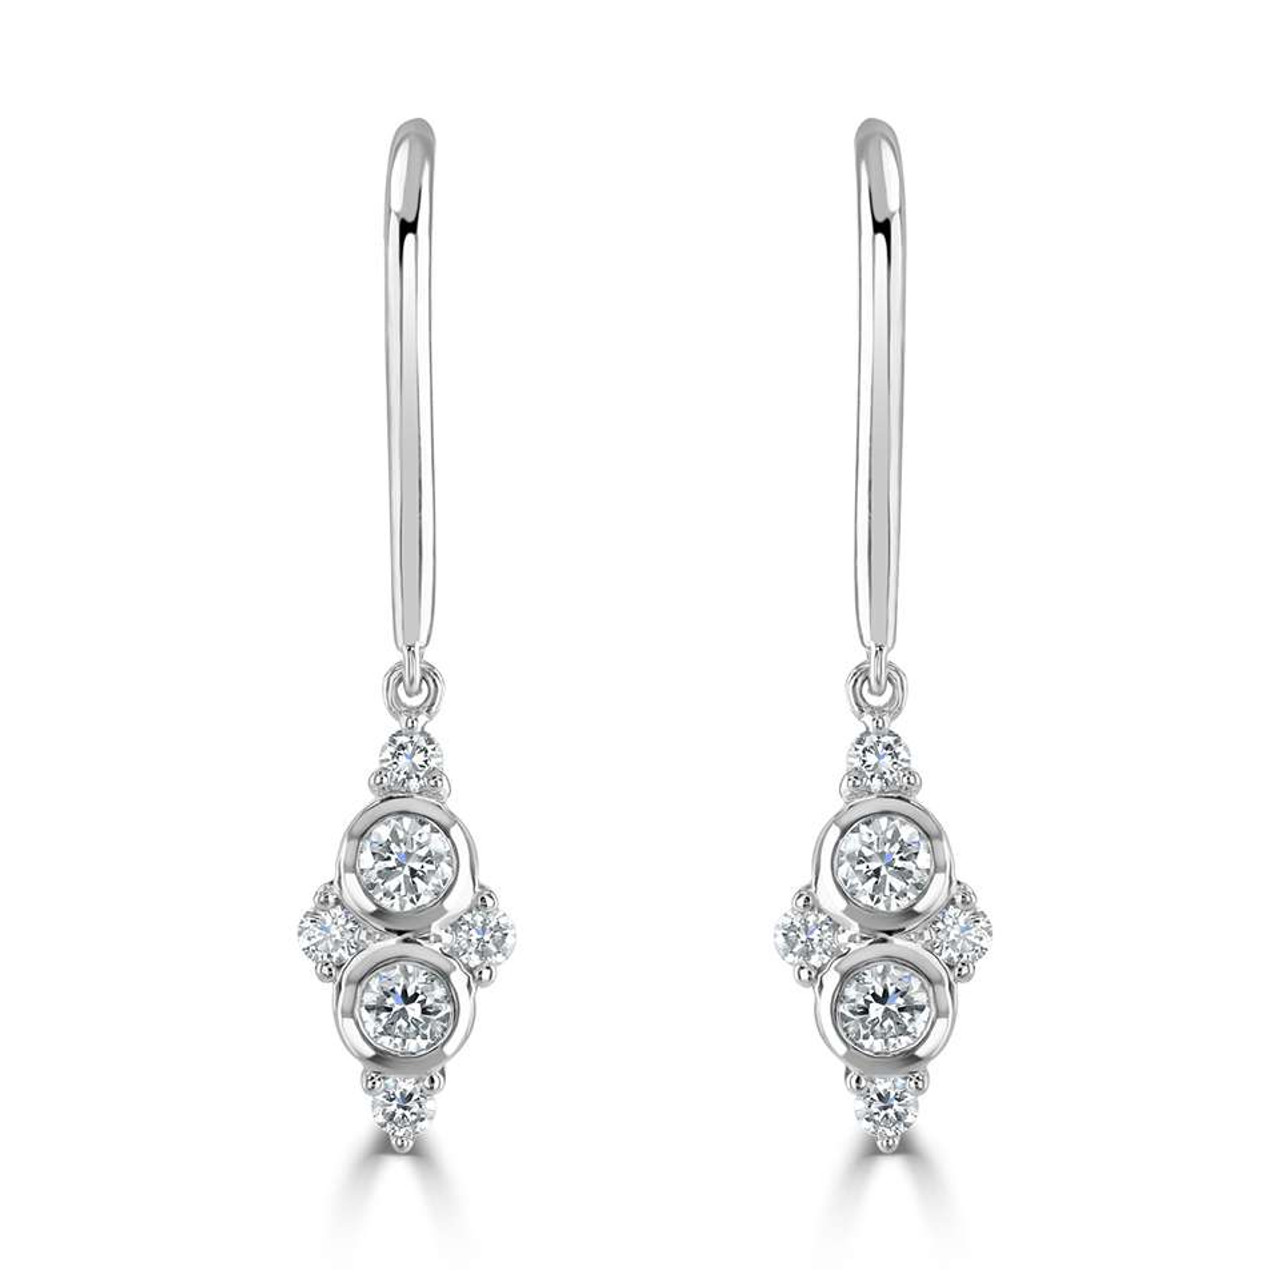 18ct White Gold Diamond Bouquet Hook Earrings